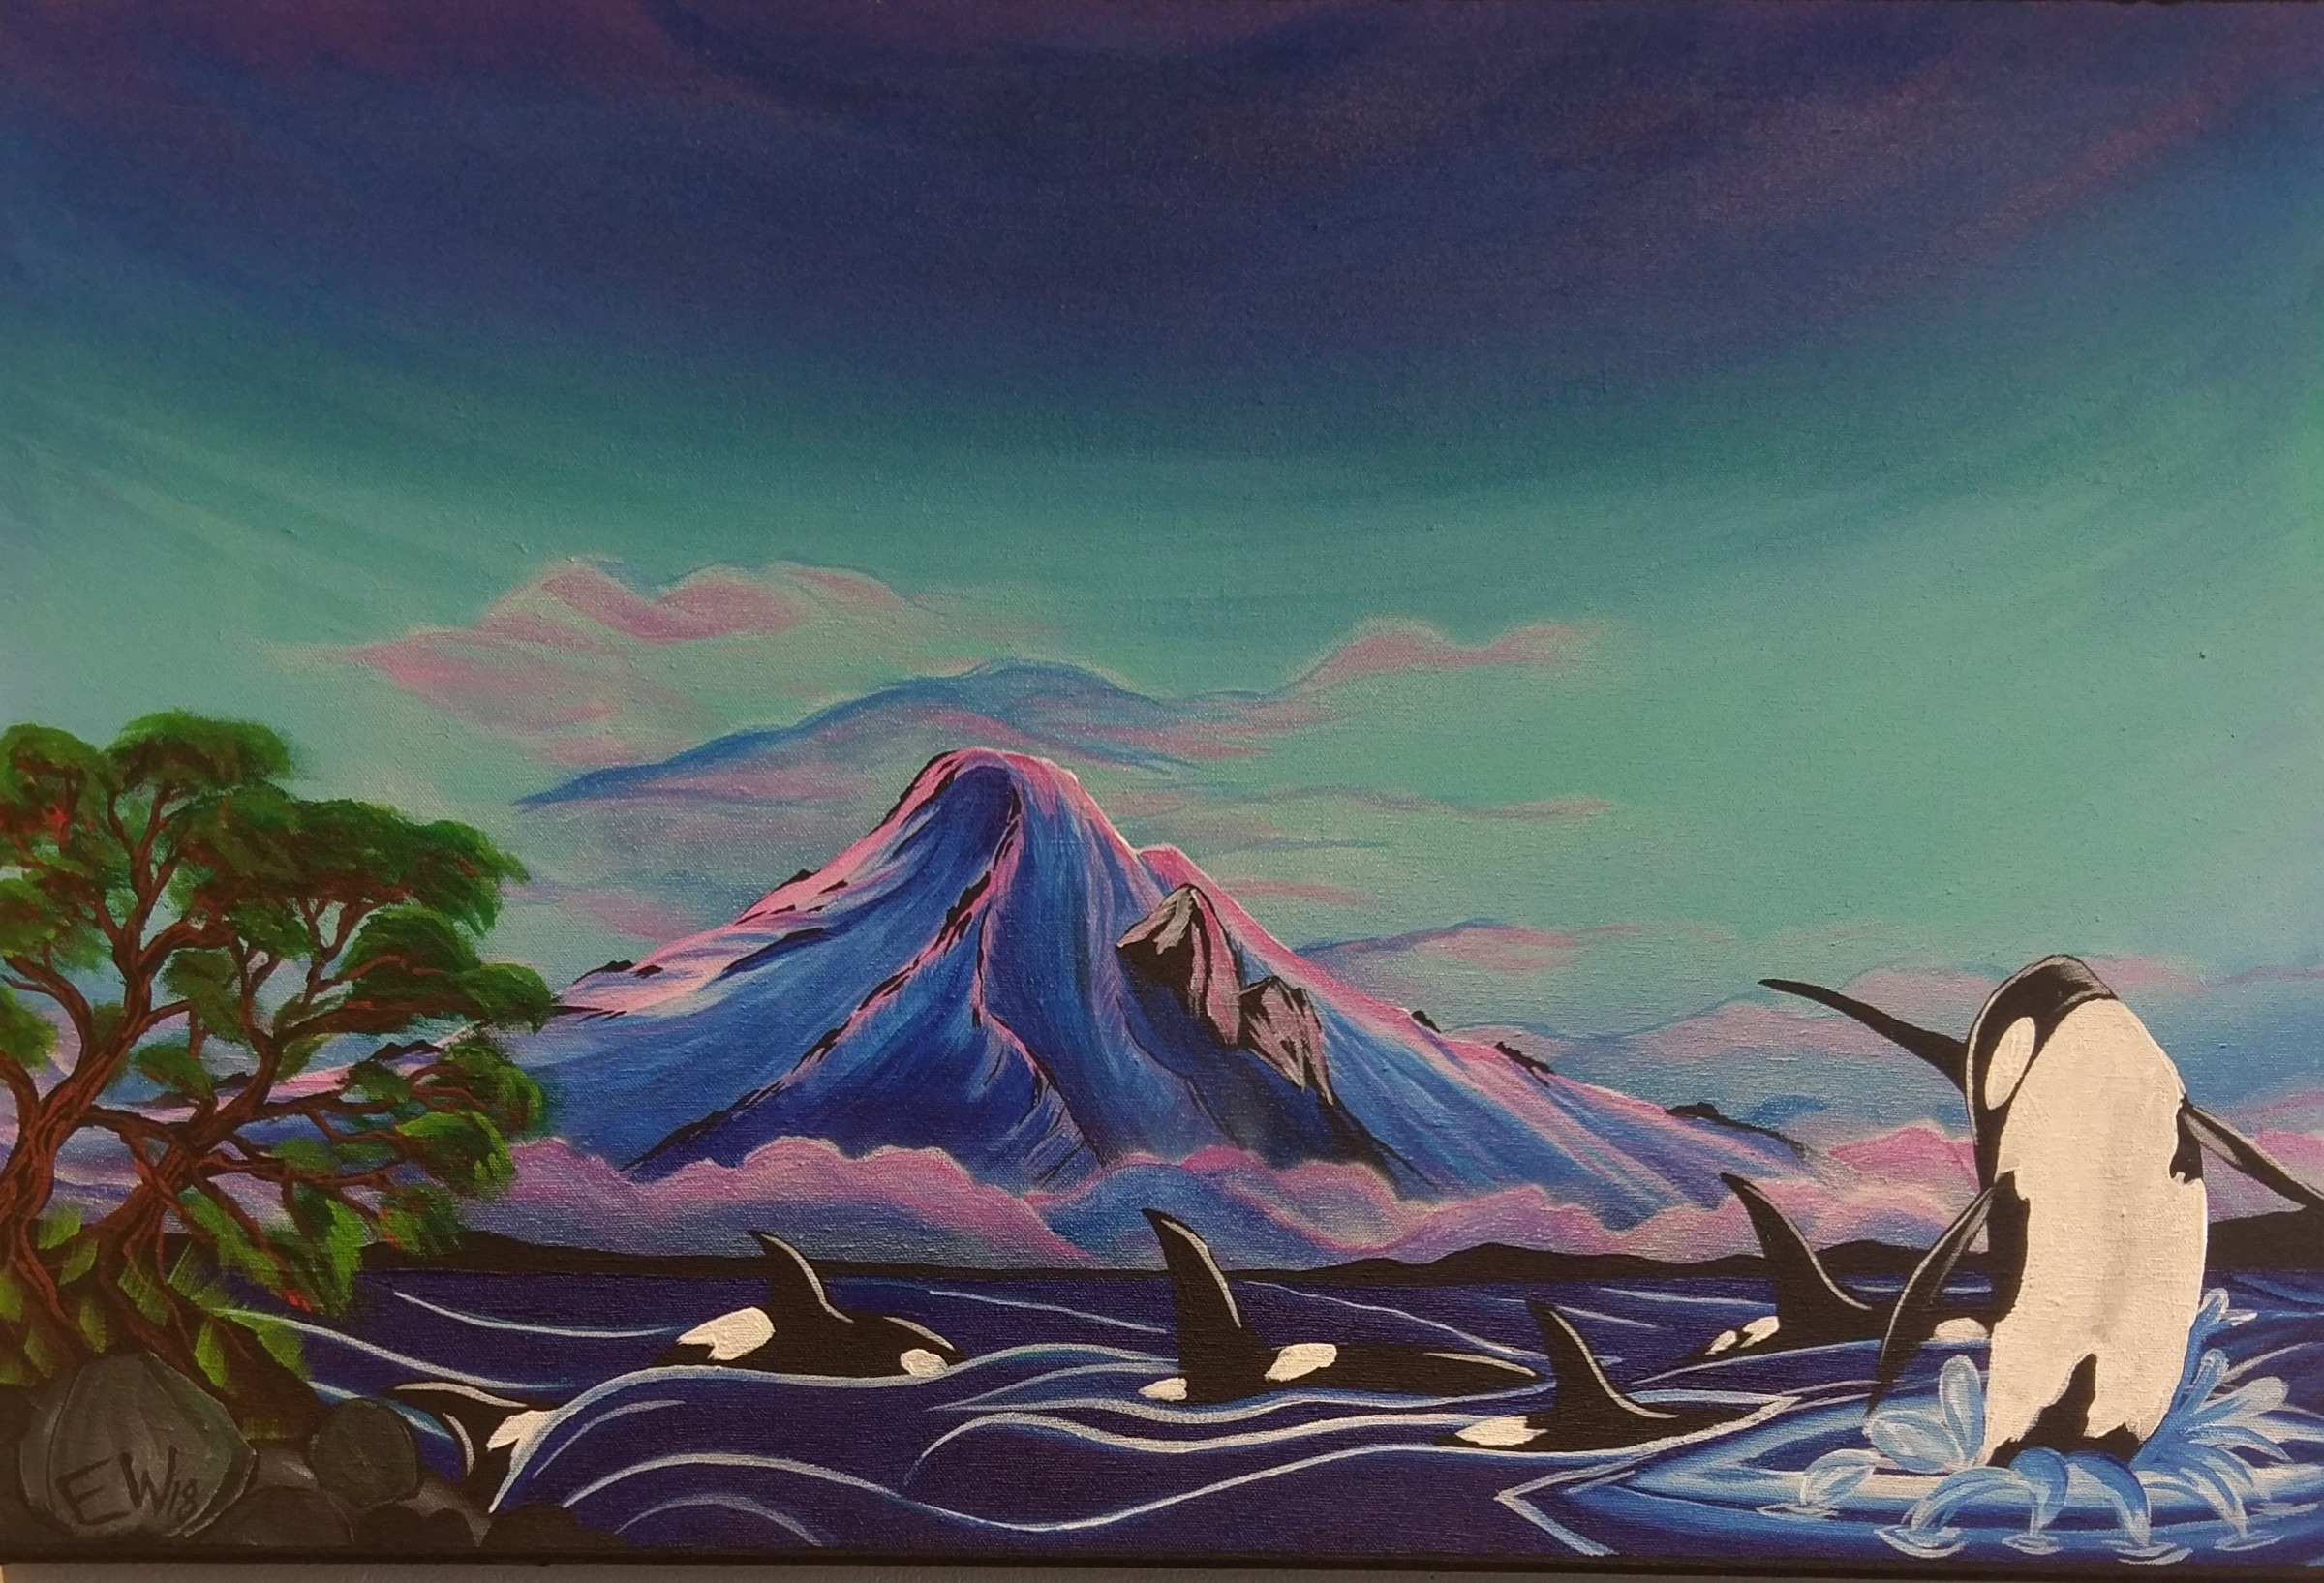 Inspired by an encounter with orcas this summer, Evan says when he doesn't have a camera to take pictures, he paints them.